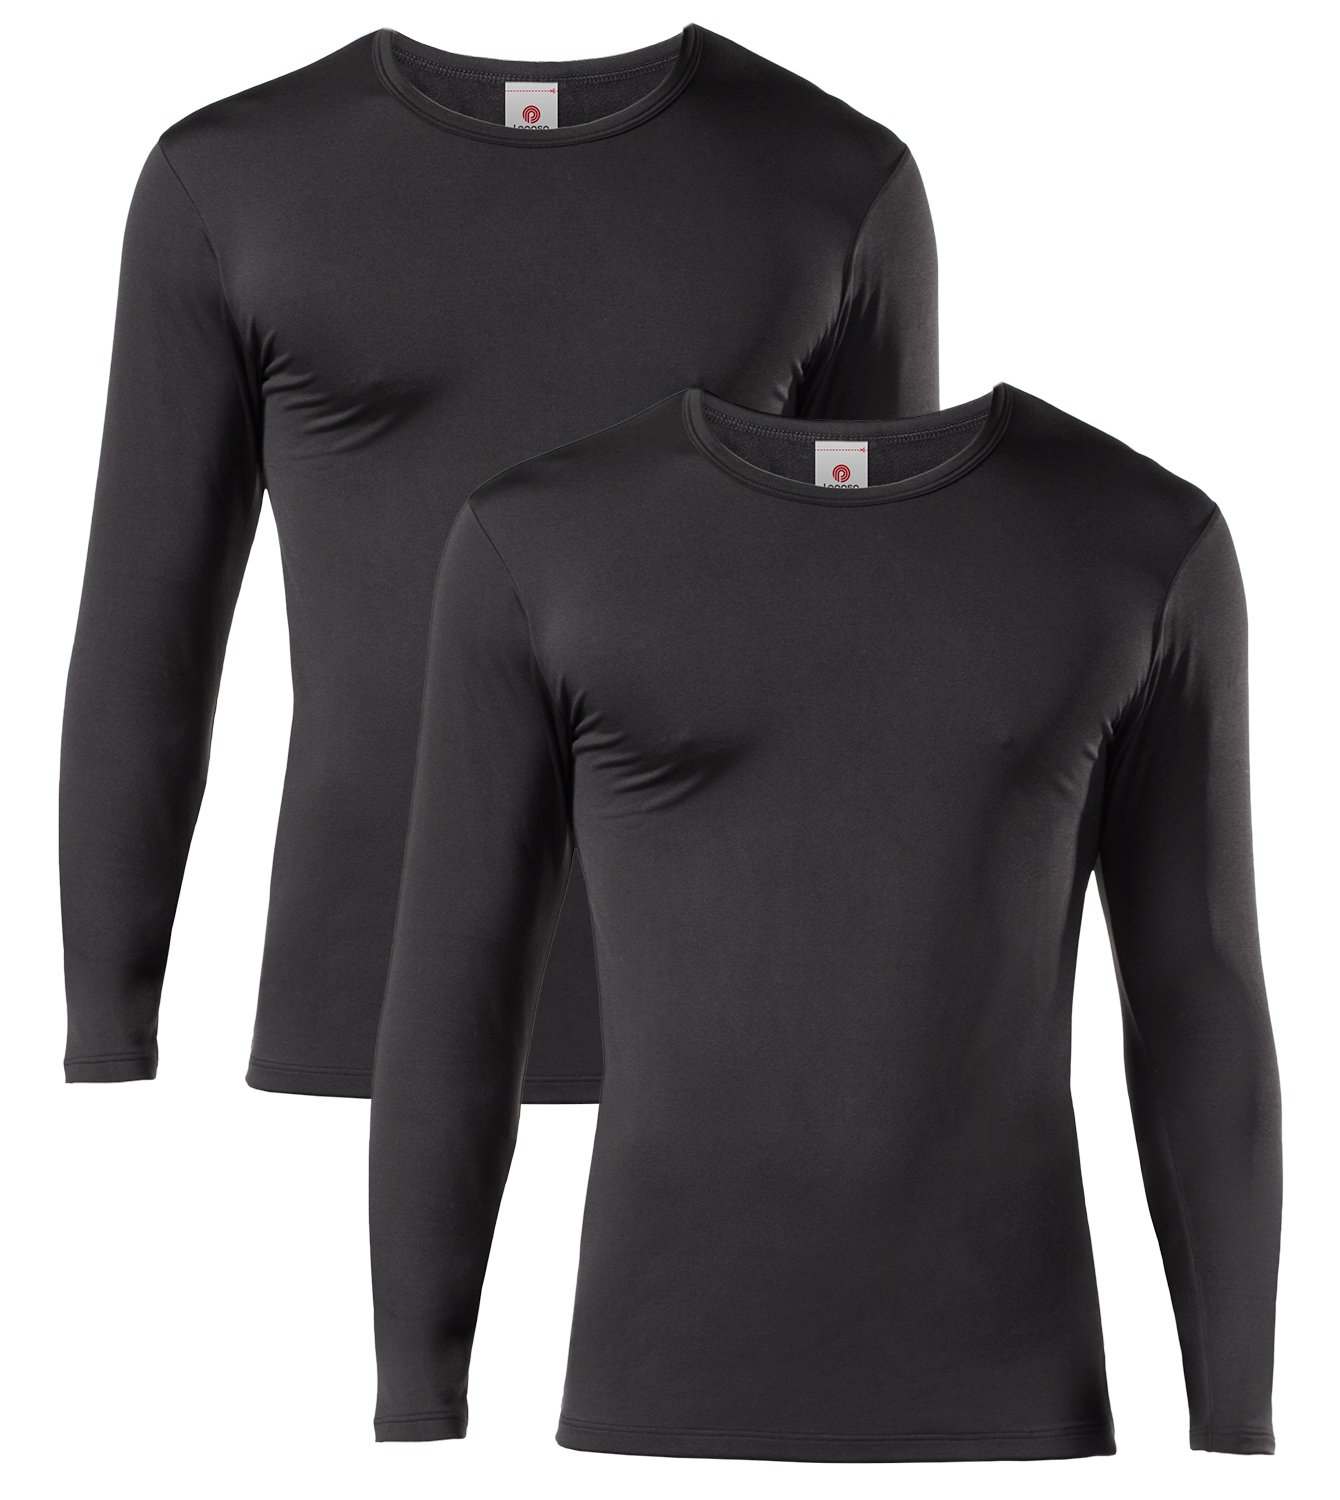 LAPASA Men's Lightweight Thermal Underwear Tops Fleece Lined Base Layer Long Sleeve Shirts 2 Pack M09 (Large, Black) by LAPASA